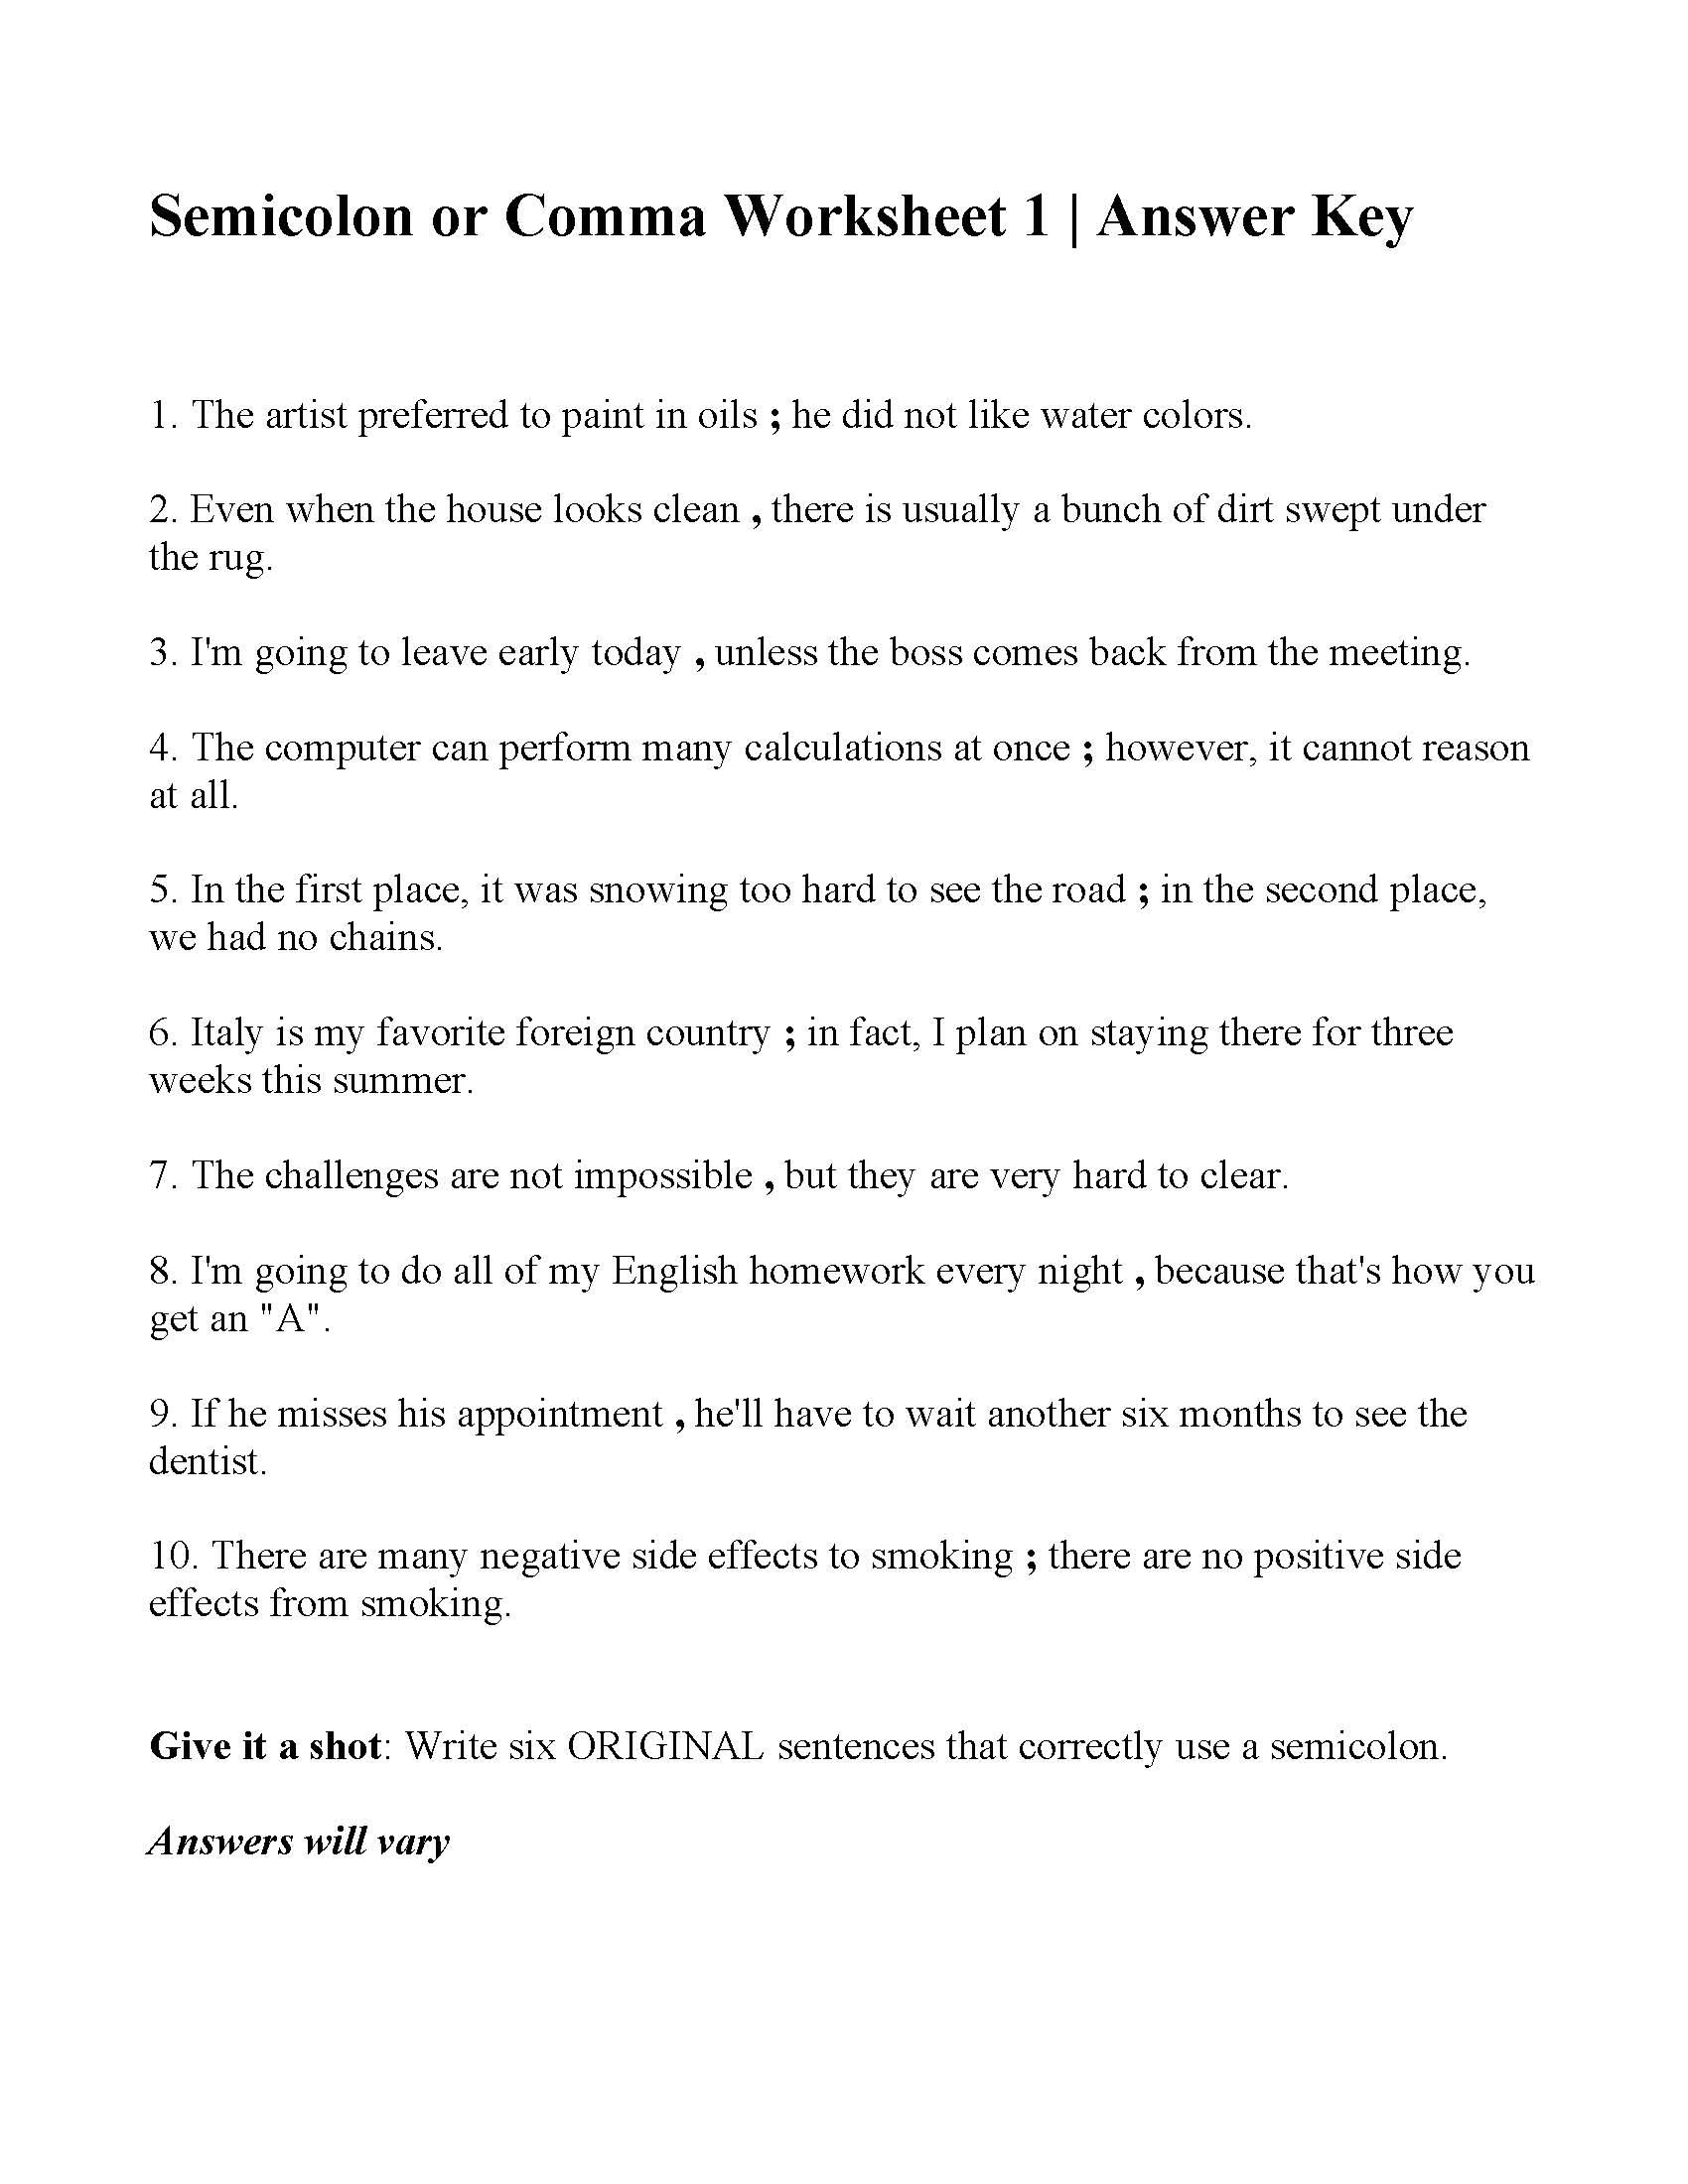 Commas Or Semicolons Worksheet 1  Answers Also Commas Semicolons And Colons Worksheet